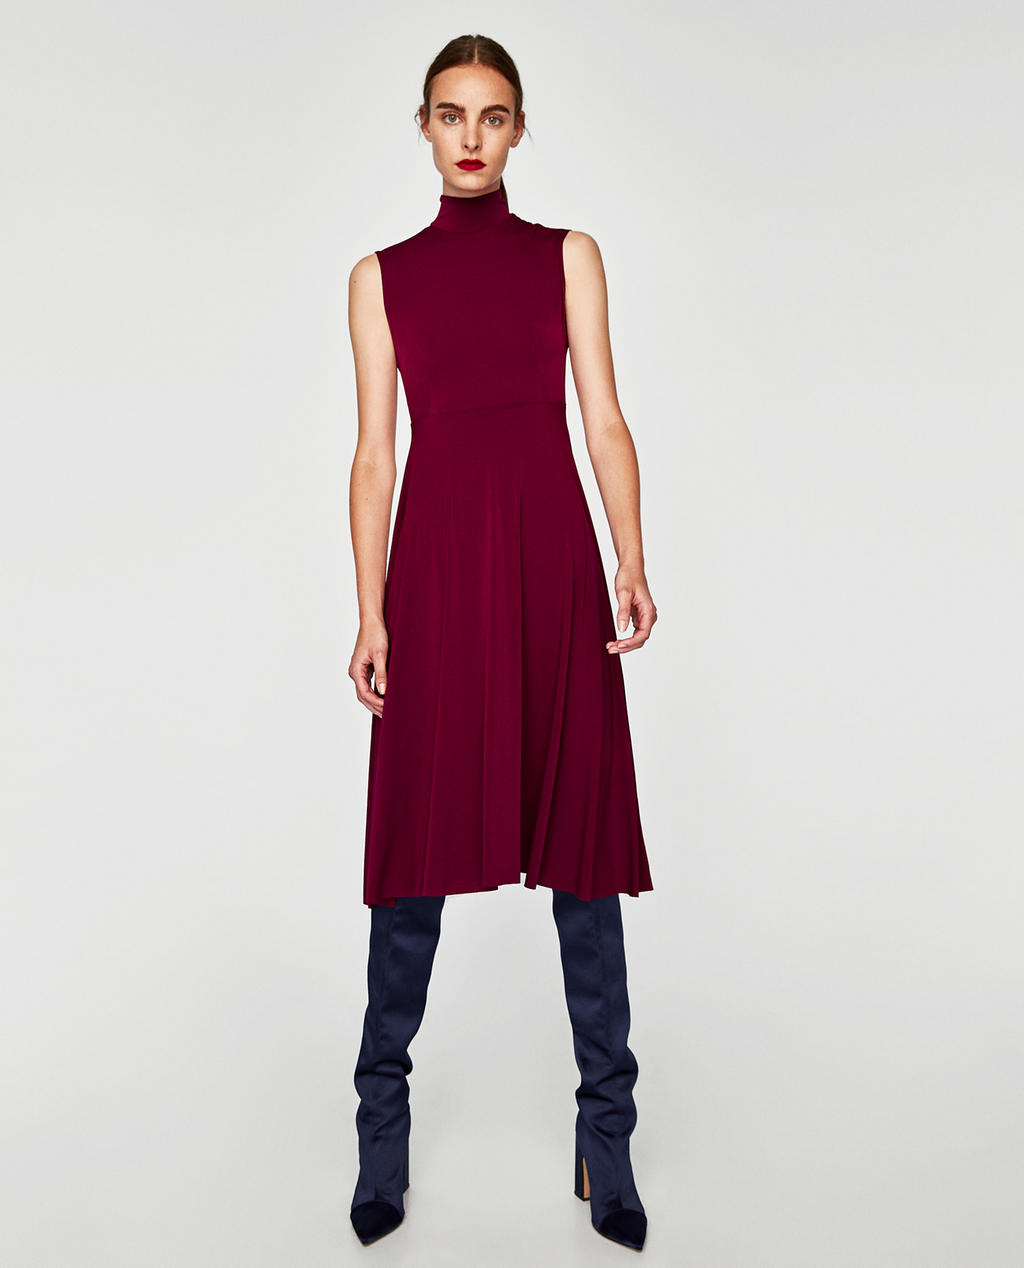 fdaa87bd968 ... available at Forever 21 · Red Dress